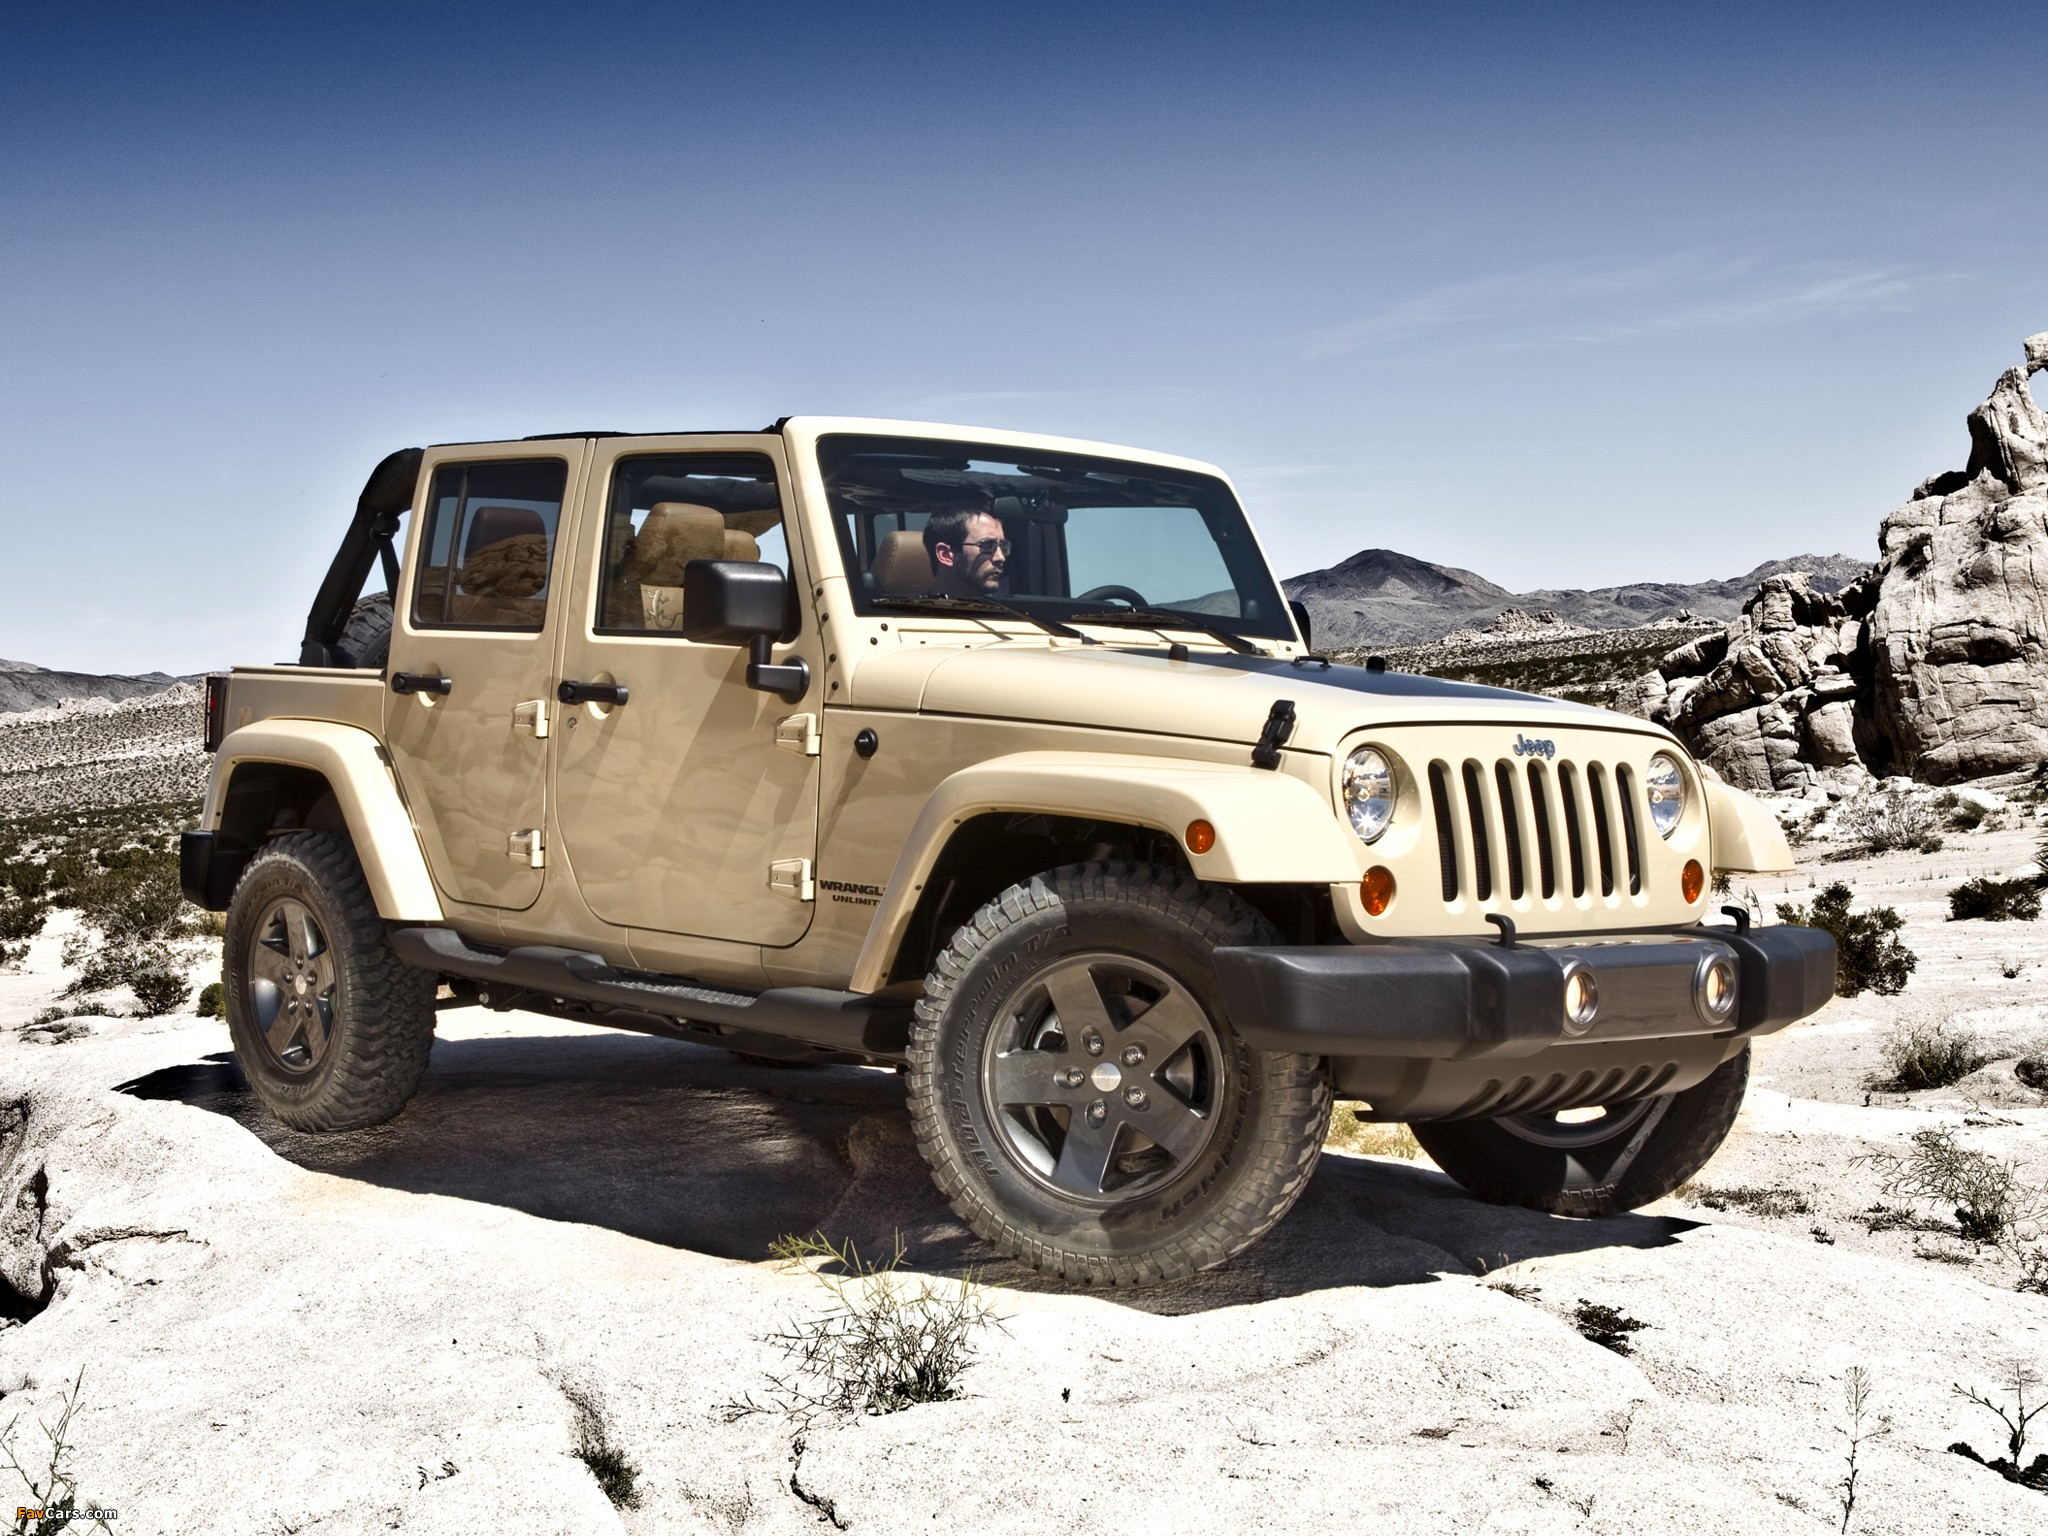 Jeep Wrangler Unlimited Mojave (JK) 2011 photos (2048 x 1536)